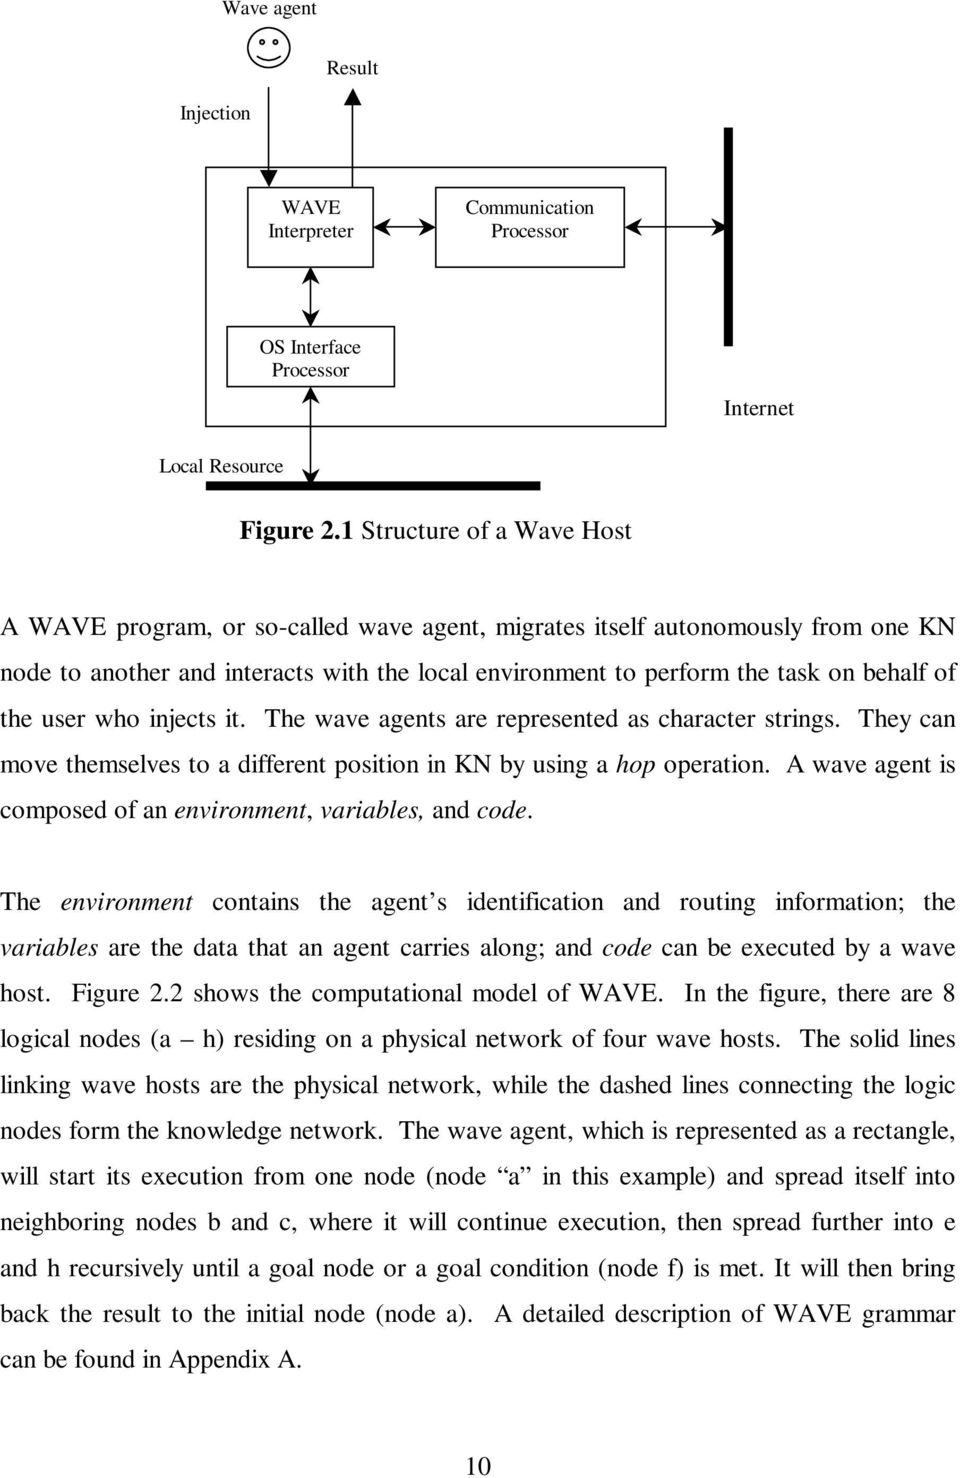 the user who injects it. The wave agents are represented as character strings. They can move themselves to a different position in KN by using a hop operation.